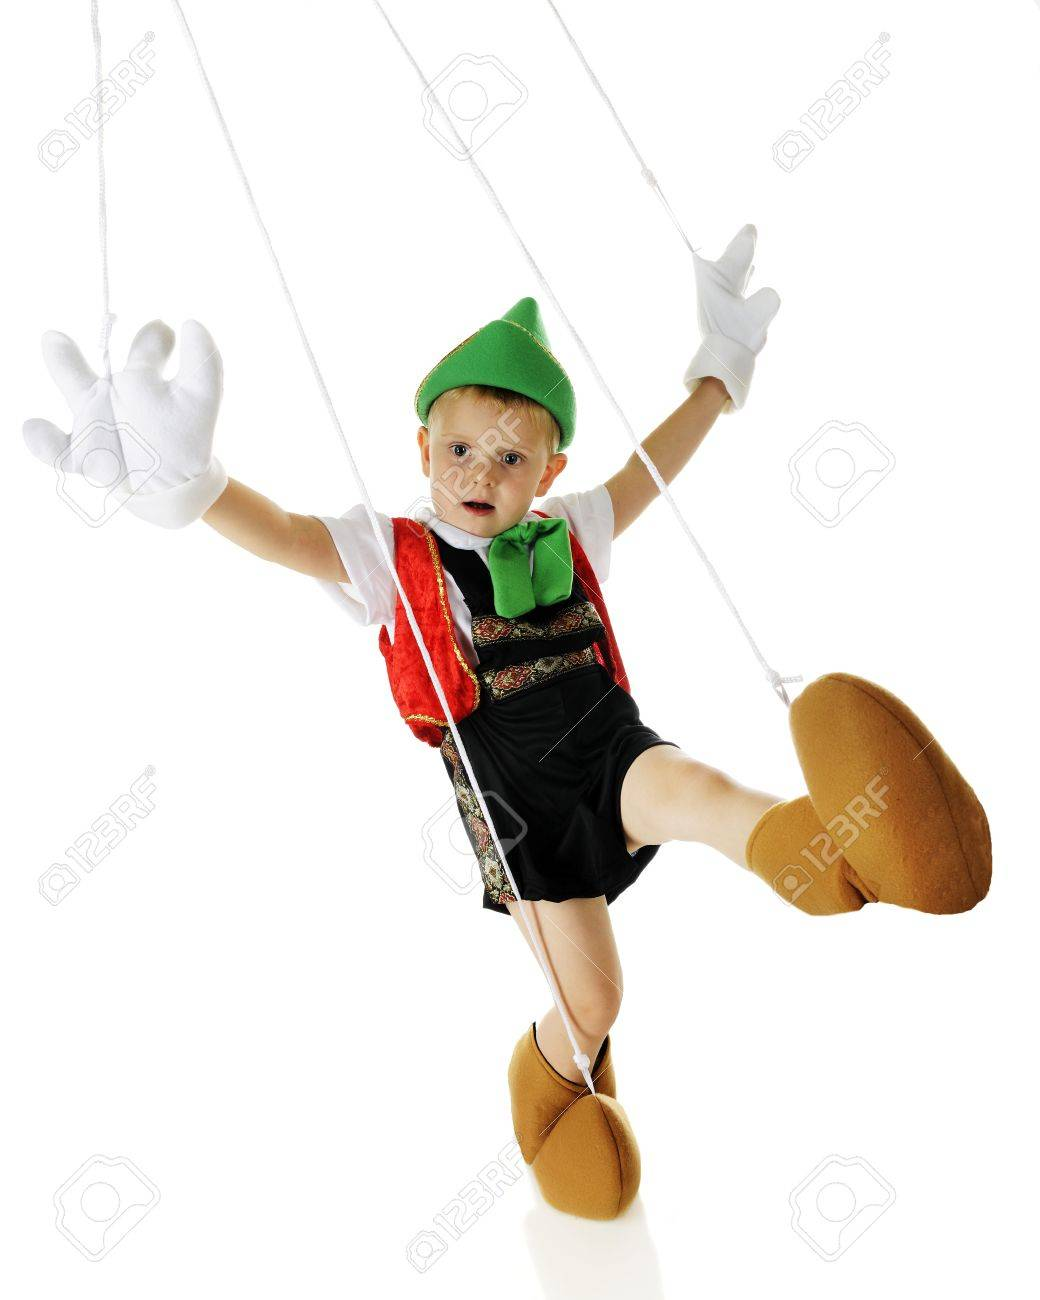 an adorable live preschool pinocchio marionette dancing strings